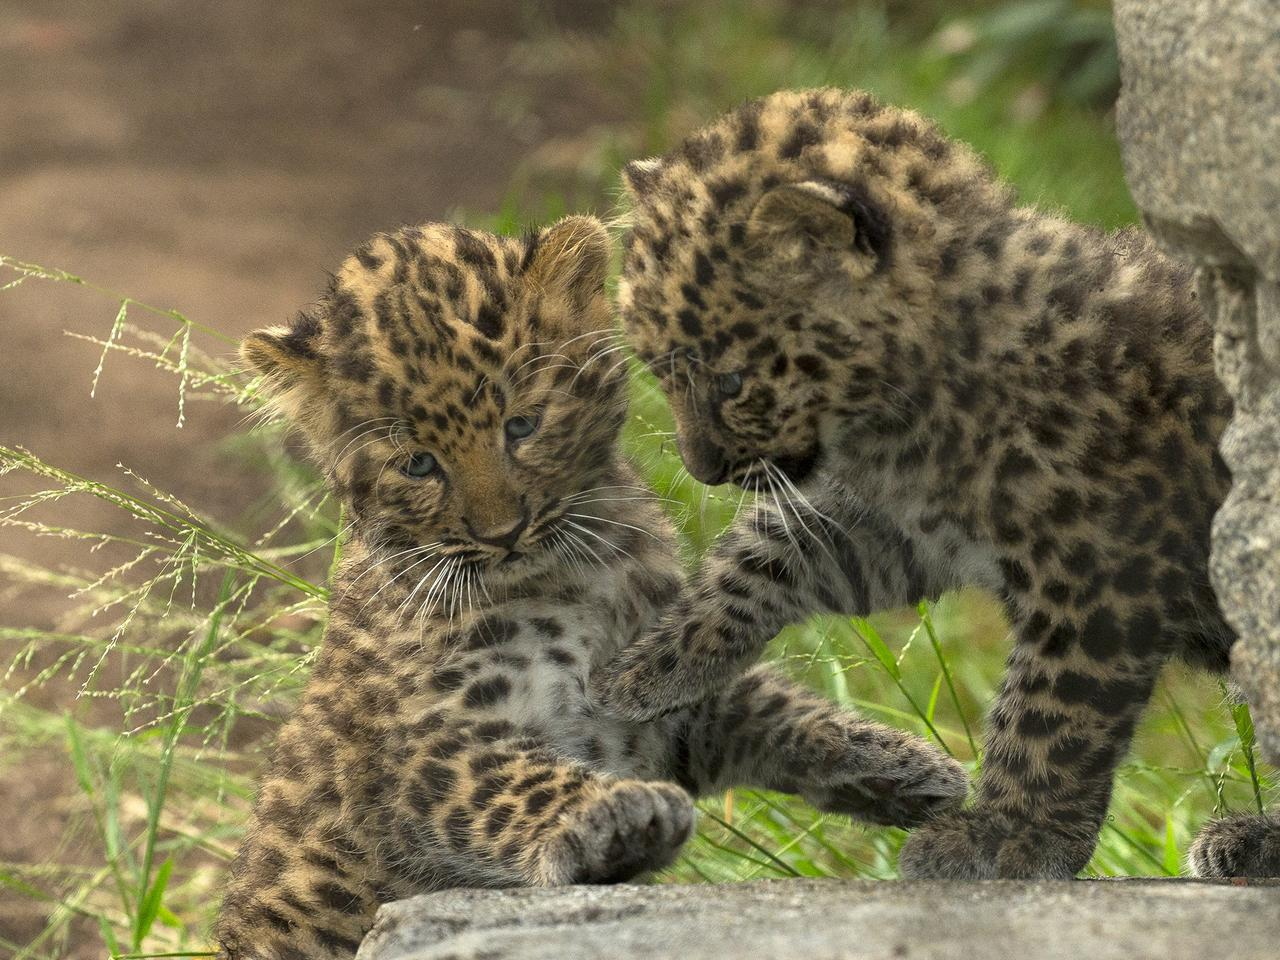 For the First Time, Rare Amur Leopard Cubs Born at the San Diego Zoo